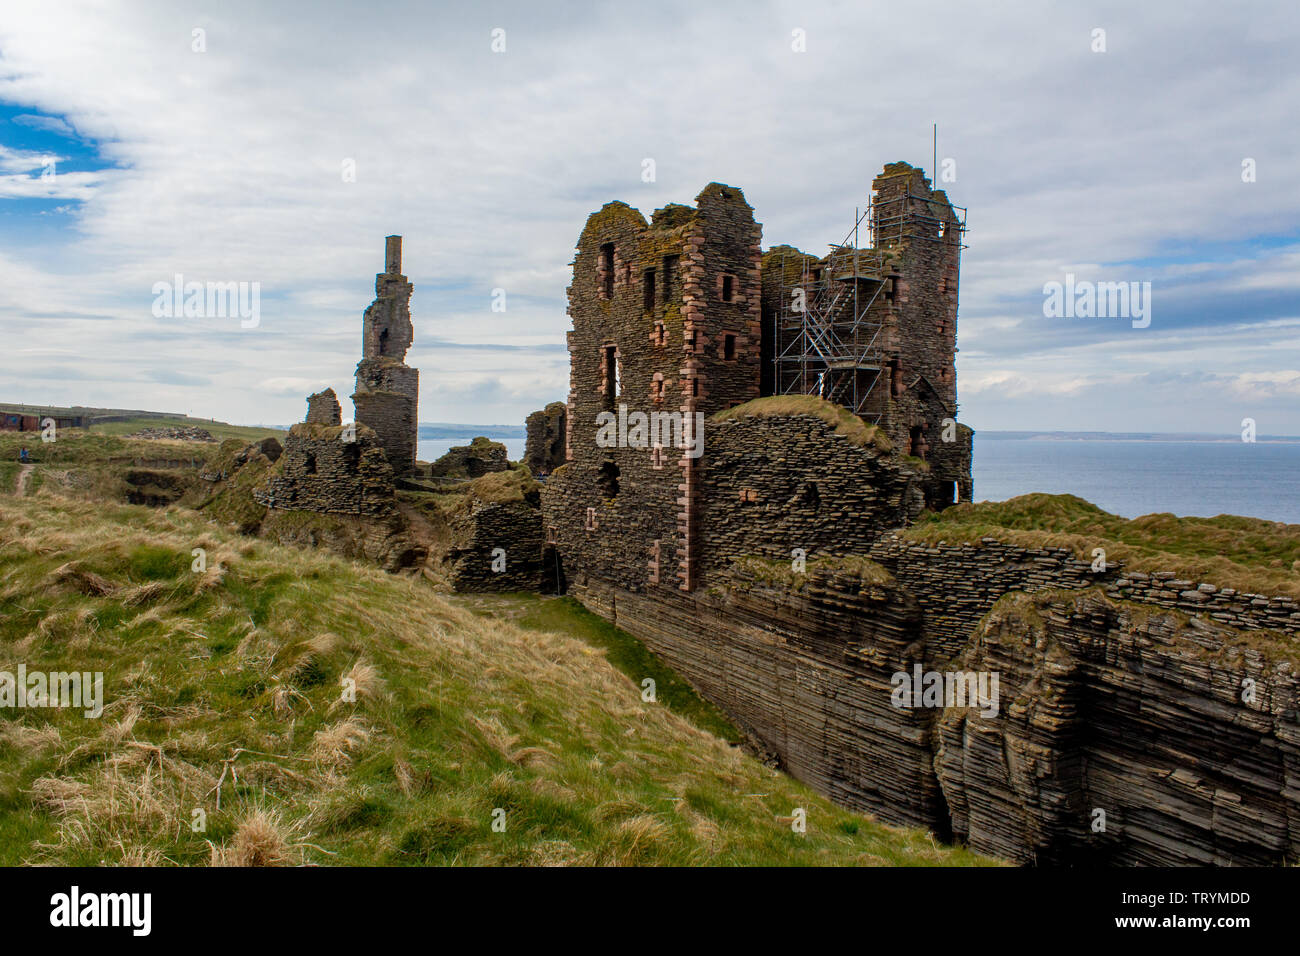 Castle Sinclair Girnigoe, 3 miles north of Wick on the east coast of Caithness, Scotland. - Stock Image